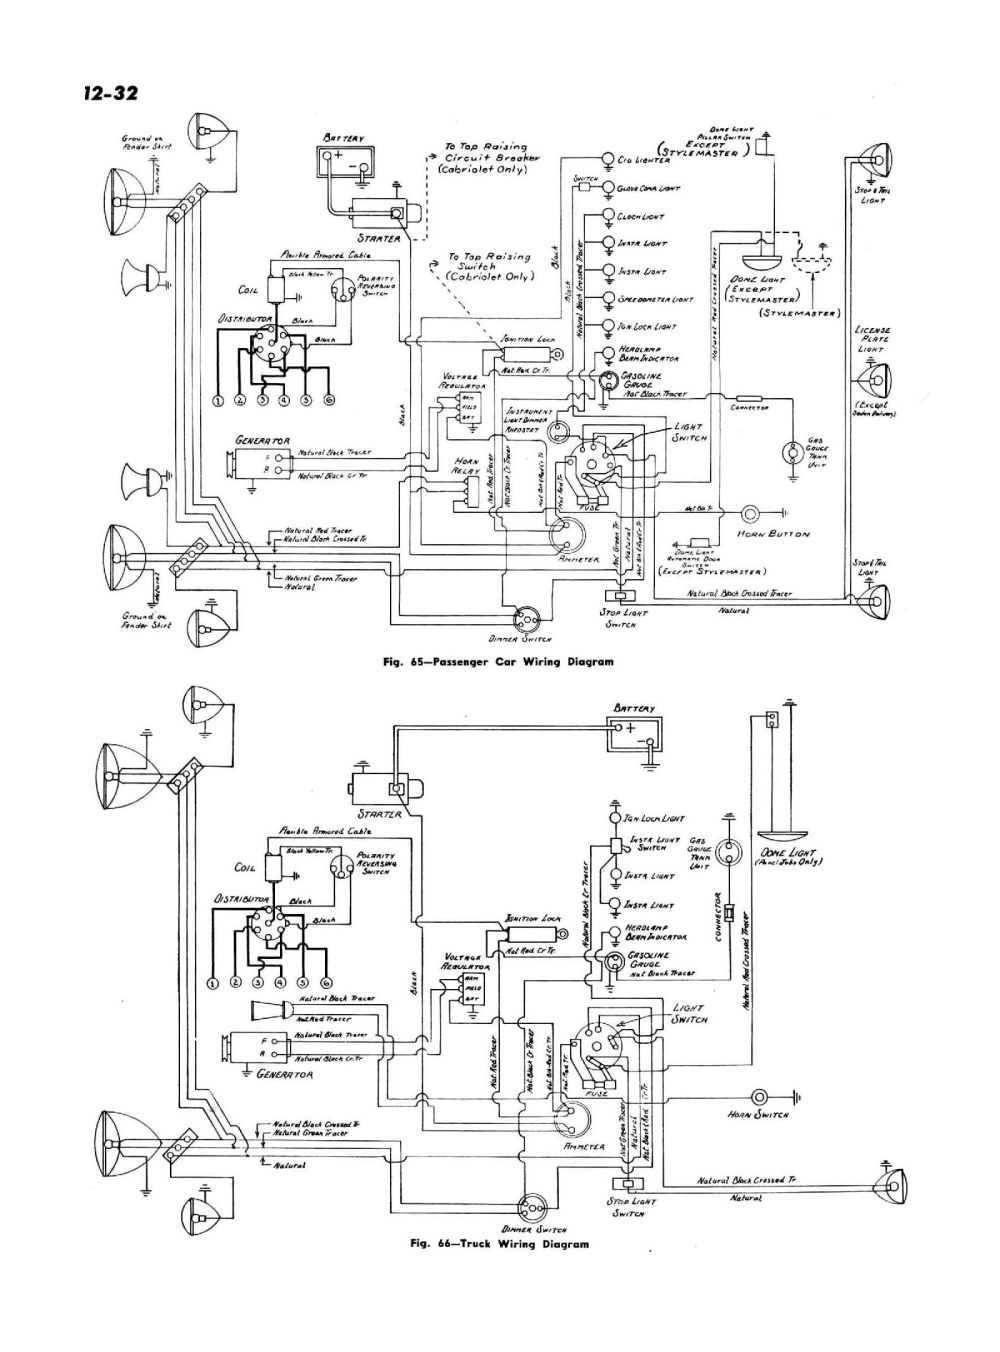 medium resolution of chevy wiring diagrams 1979 chevy truck wiring diagram 1946 chevy truck wiring diagram